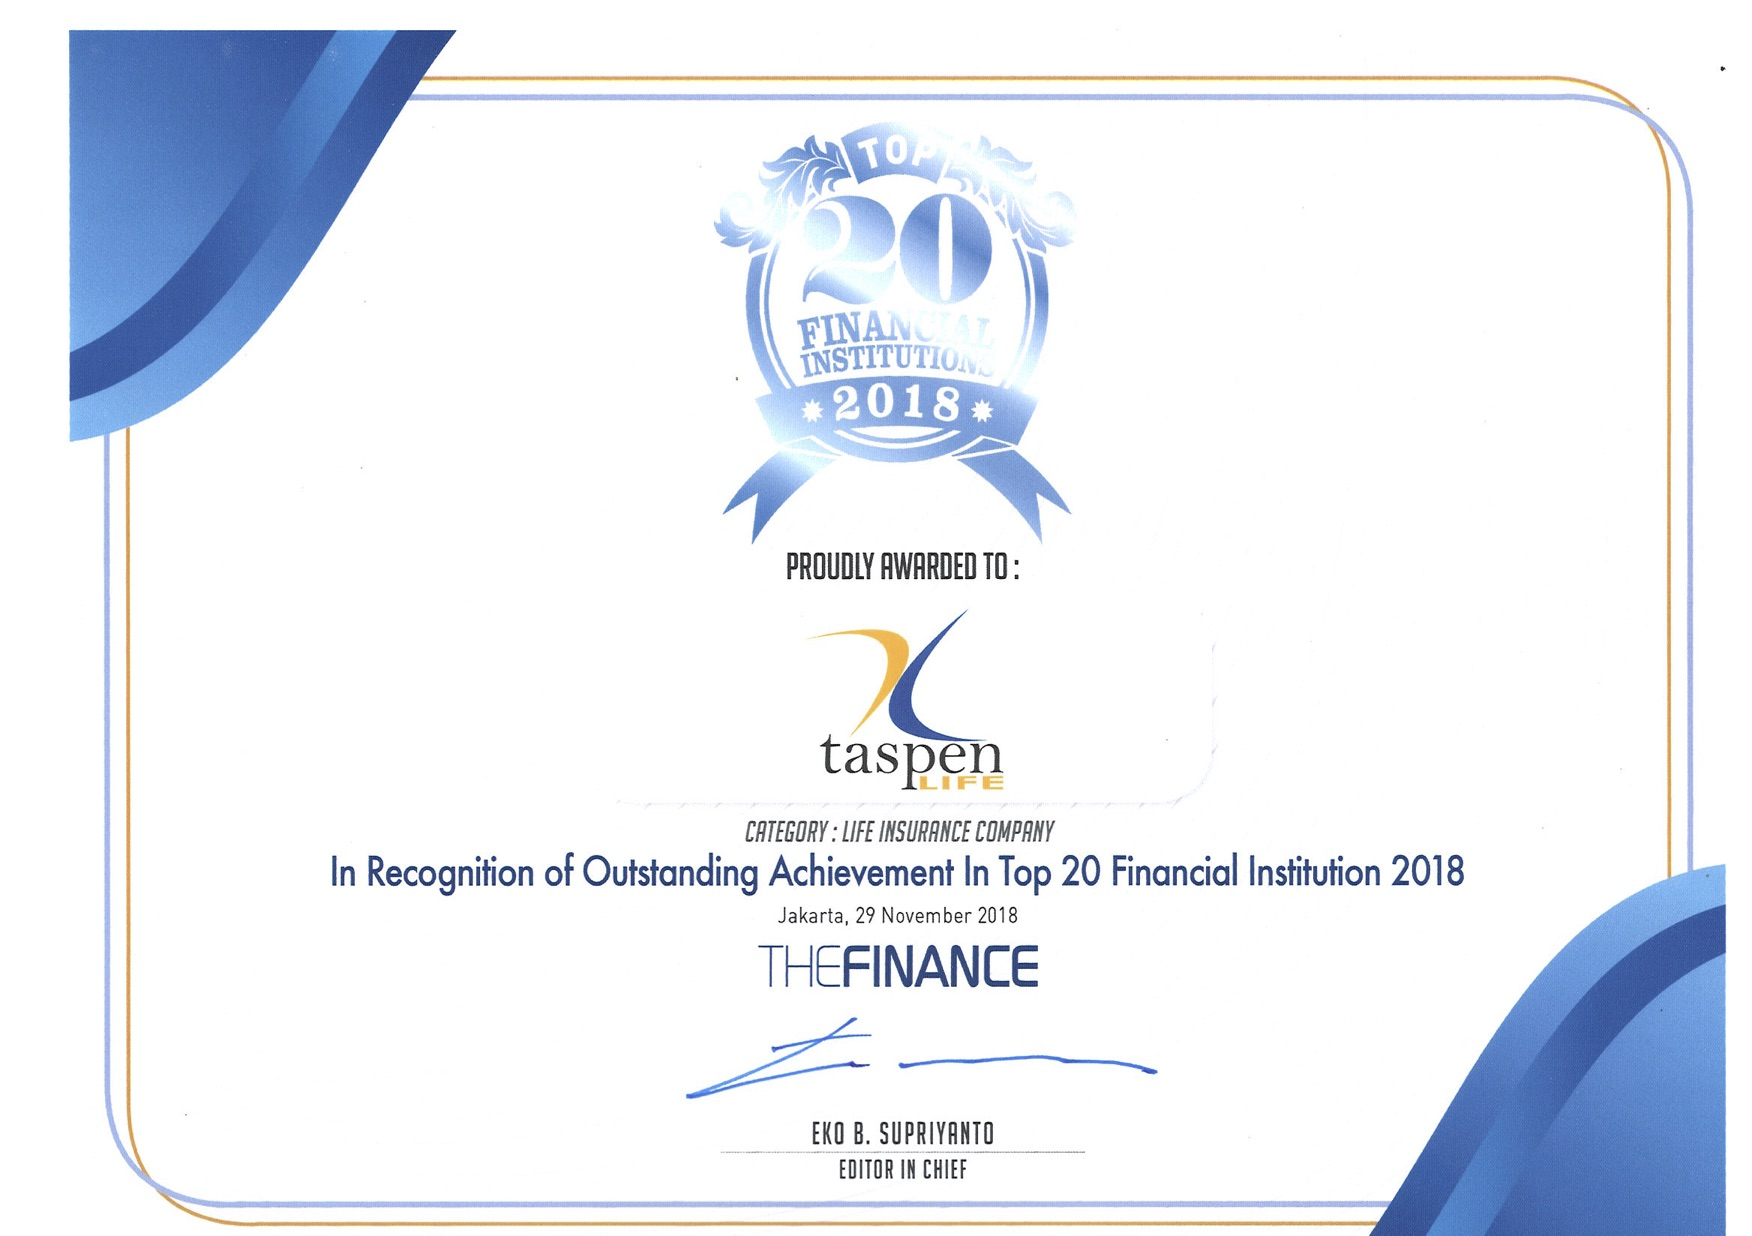 Top 20 Financial Istitution - The Finance